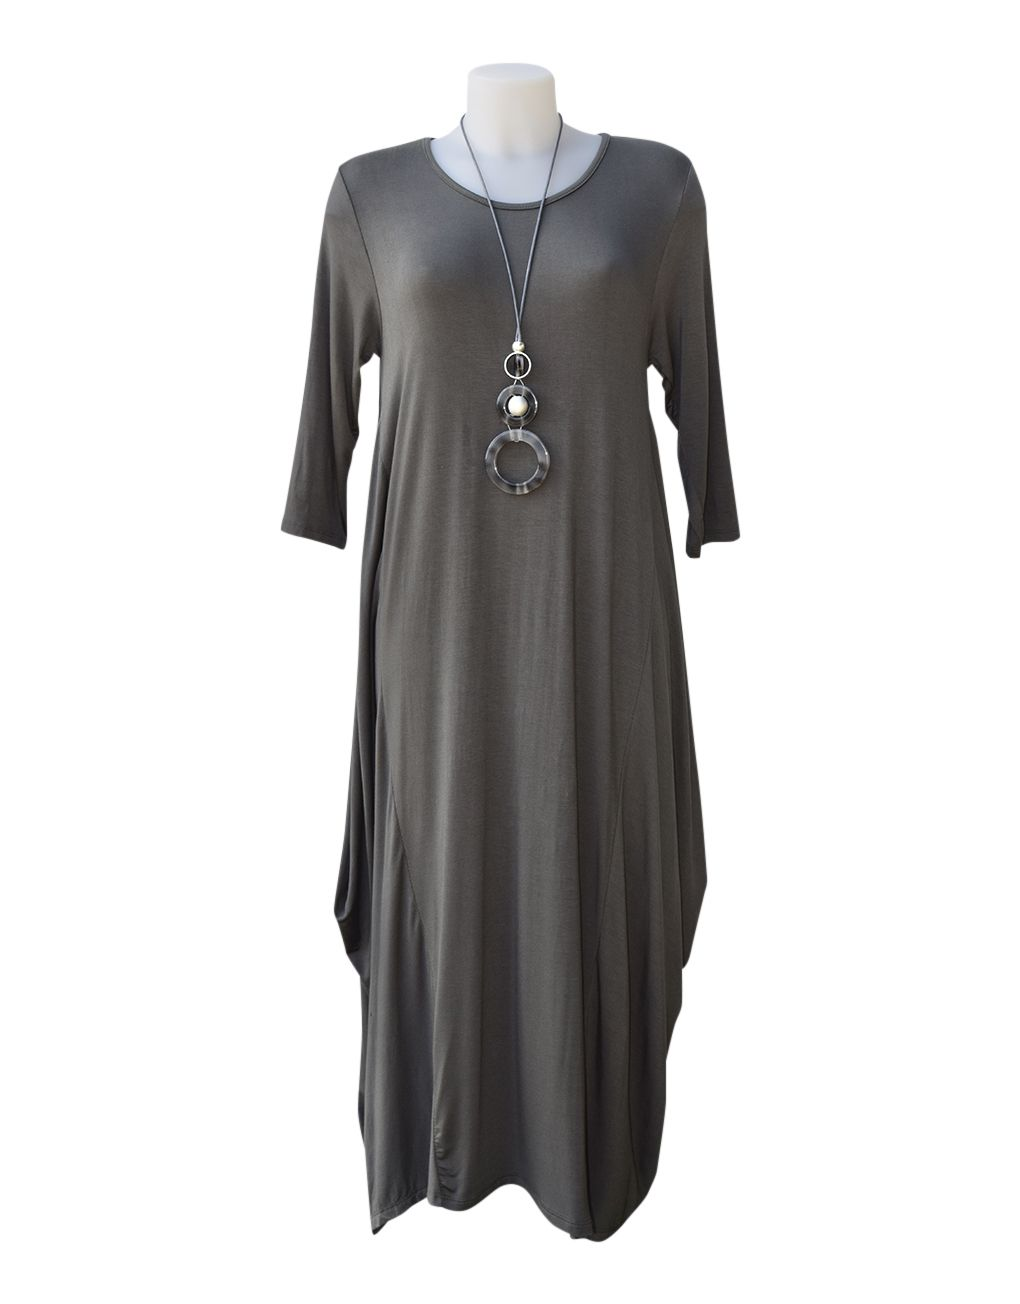 Fashion Fix Italian 3:4 Sleeve Magic Dress Charcoal